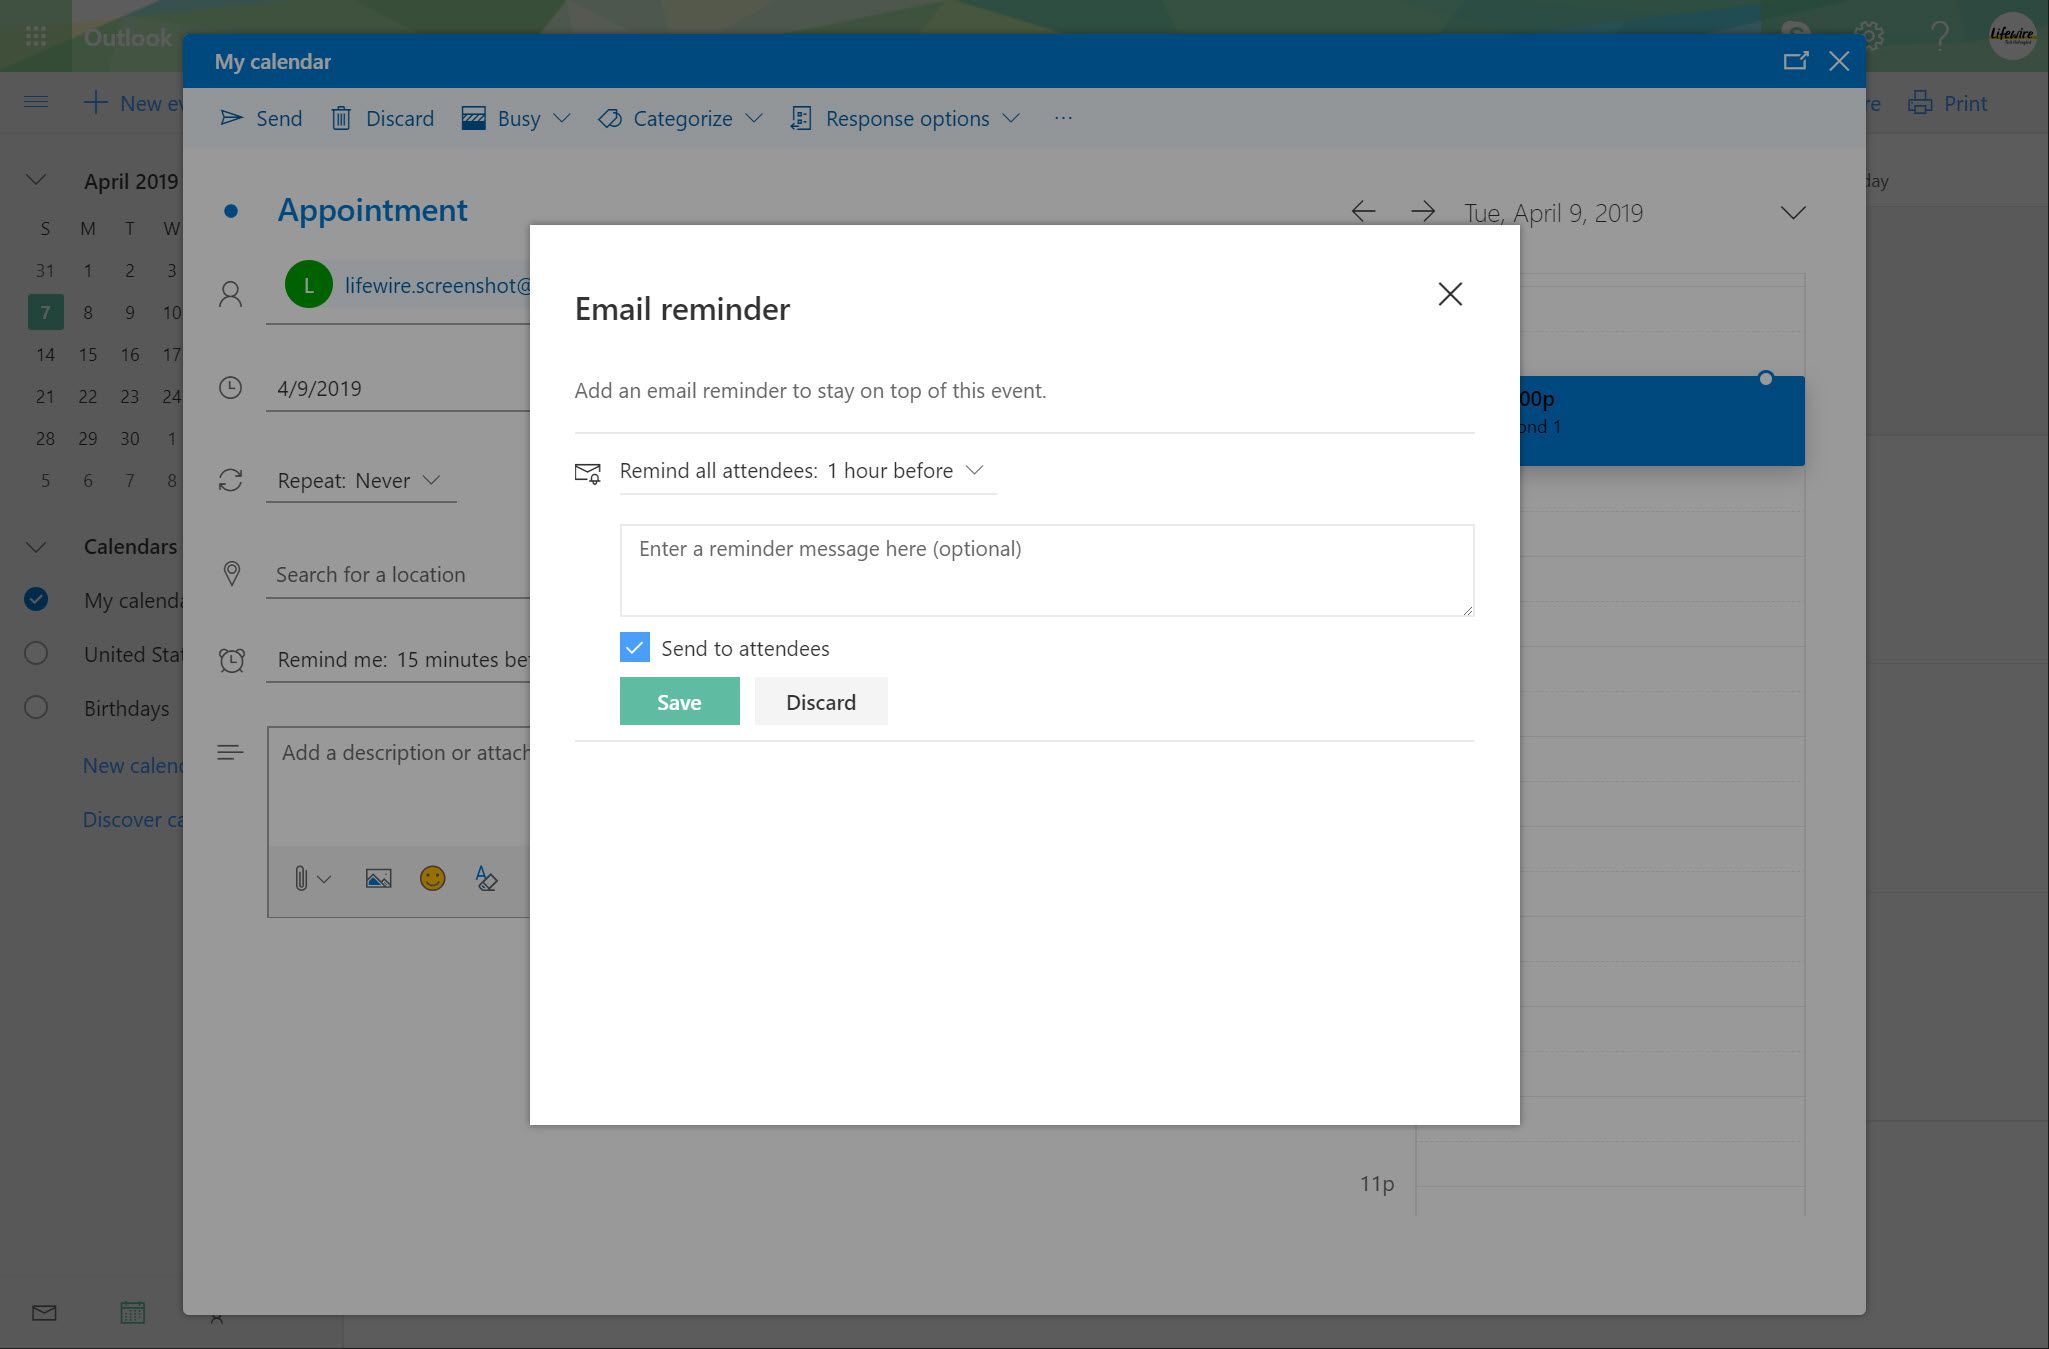 Outlook.com Email reminder window with Send to attendees checkbox selected